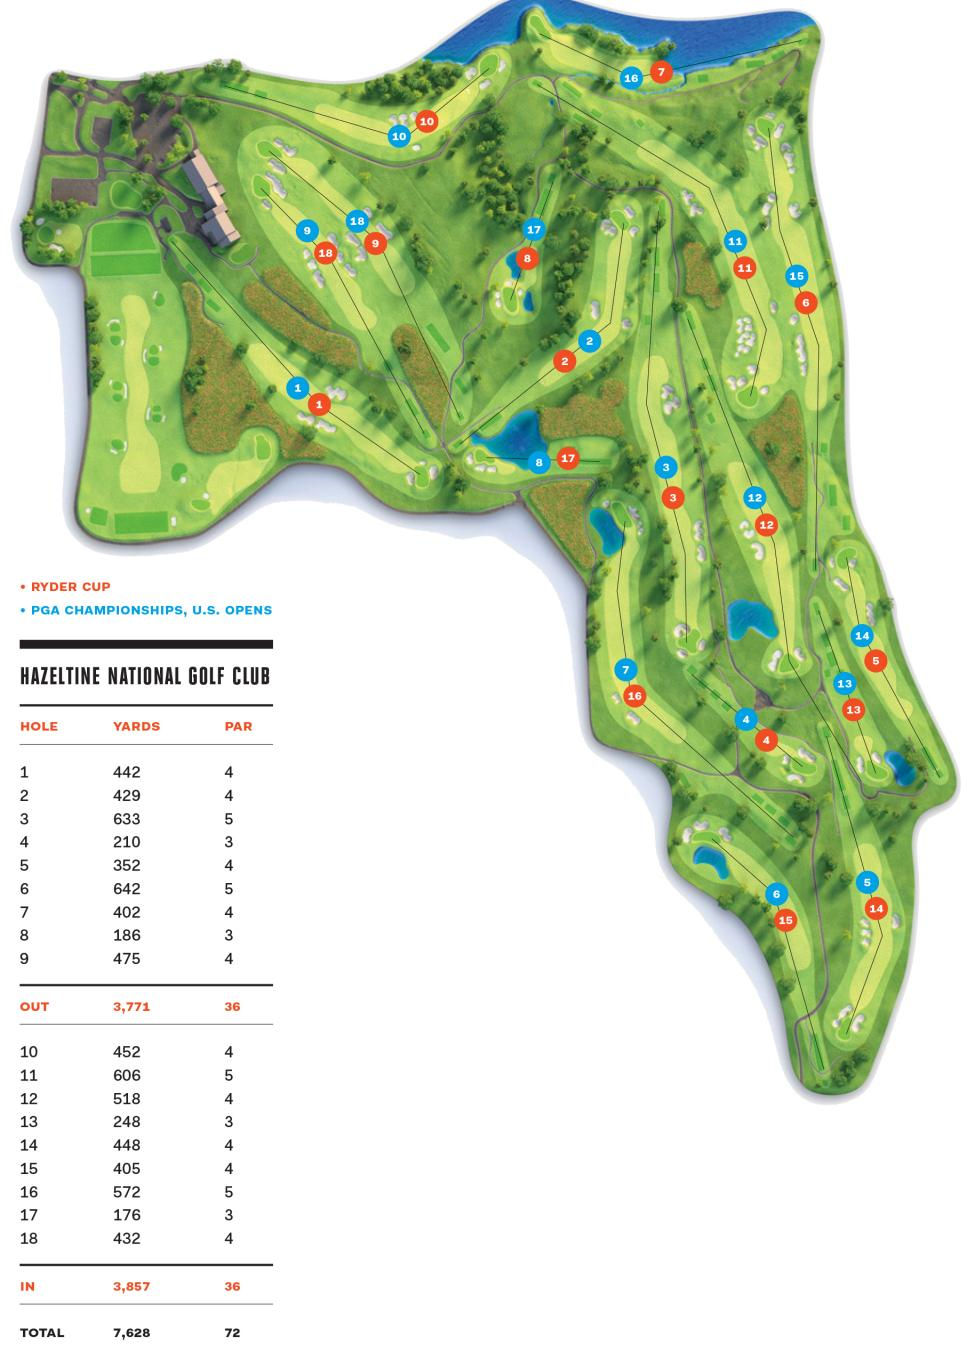 Hazeltine-National-Golf-Club-aerial-map-yardages.jpg